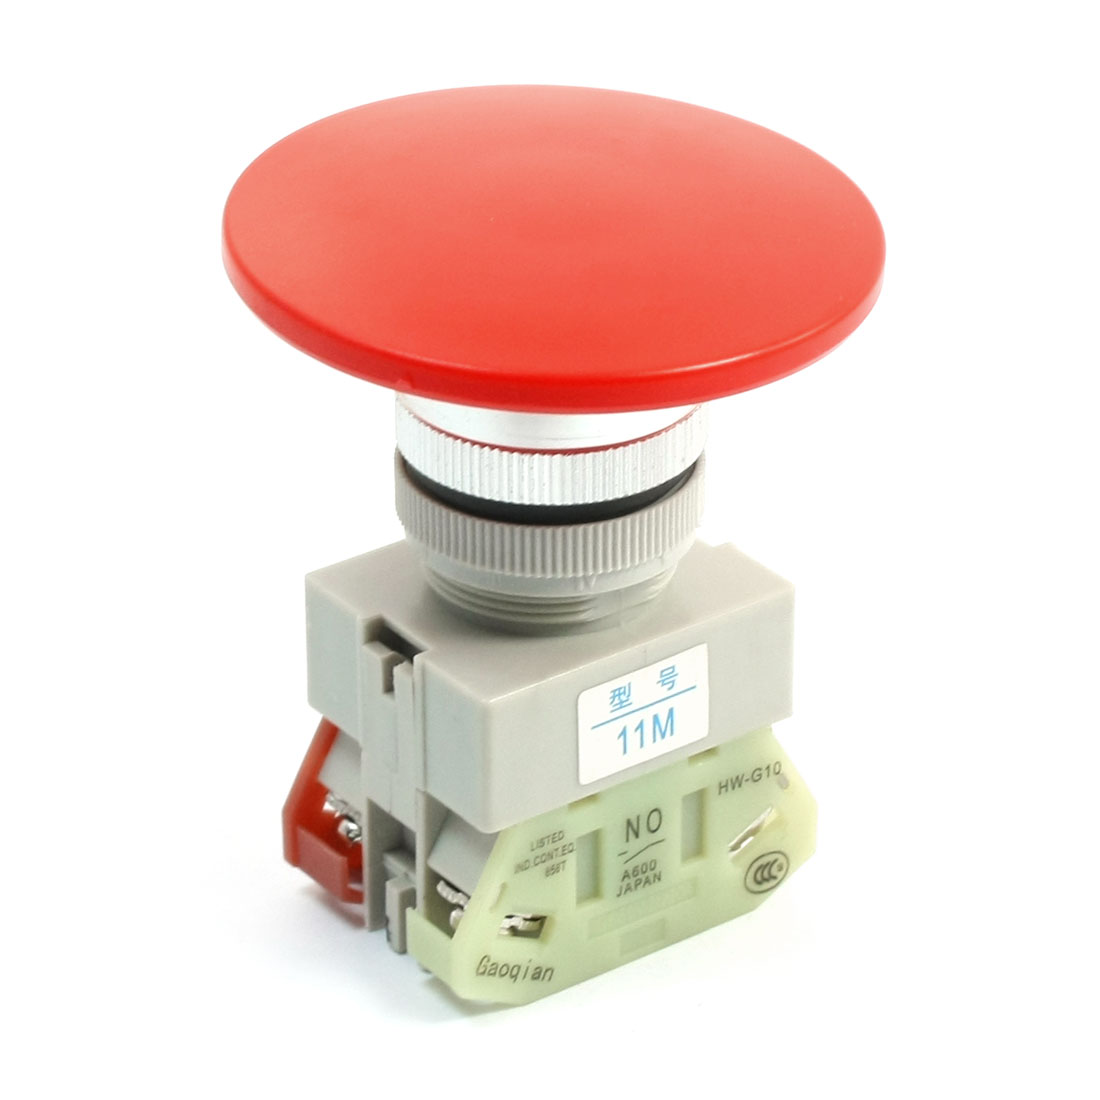 DPST Momentary Action Type Red Mushroom Head Push Button Press Switch 660V 10A